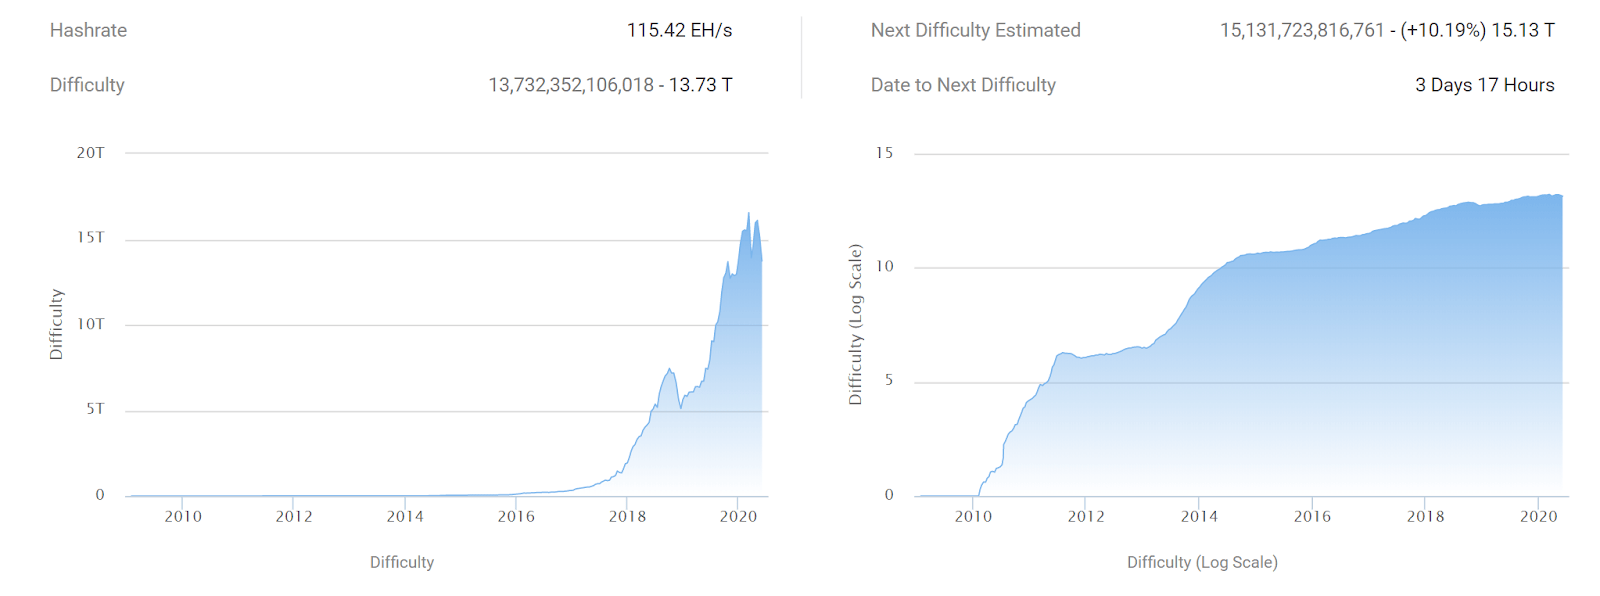 Bitcoin mining difficulty will increase by 10.19% in 3 days